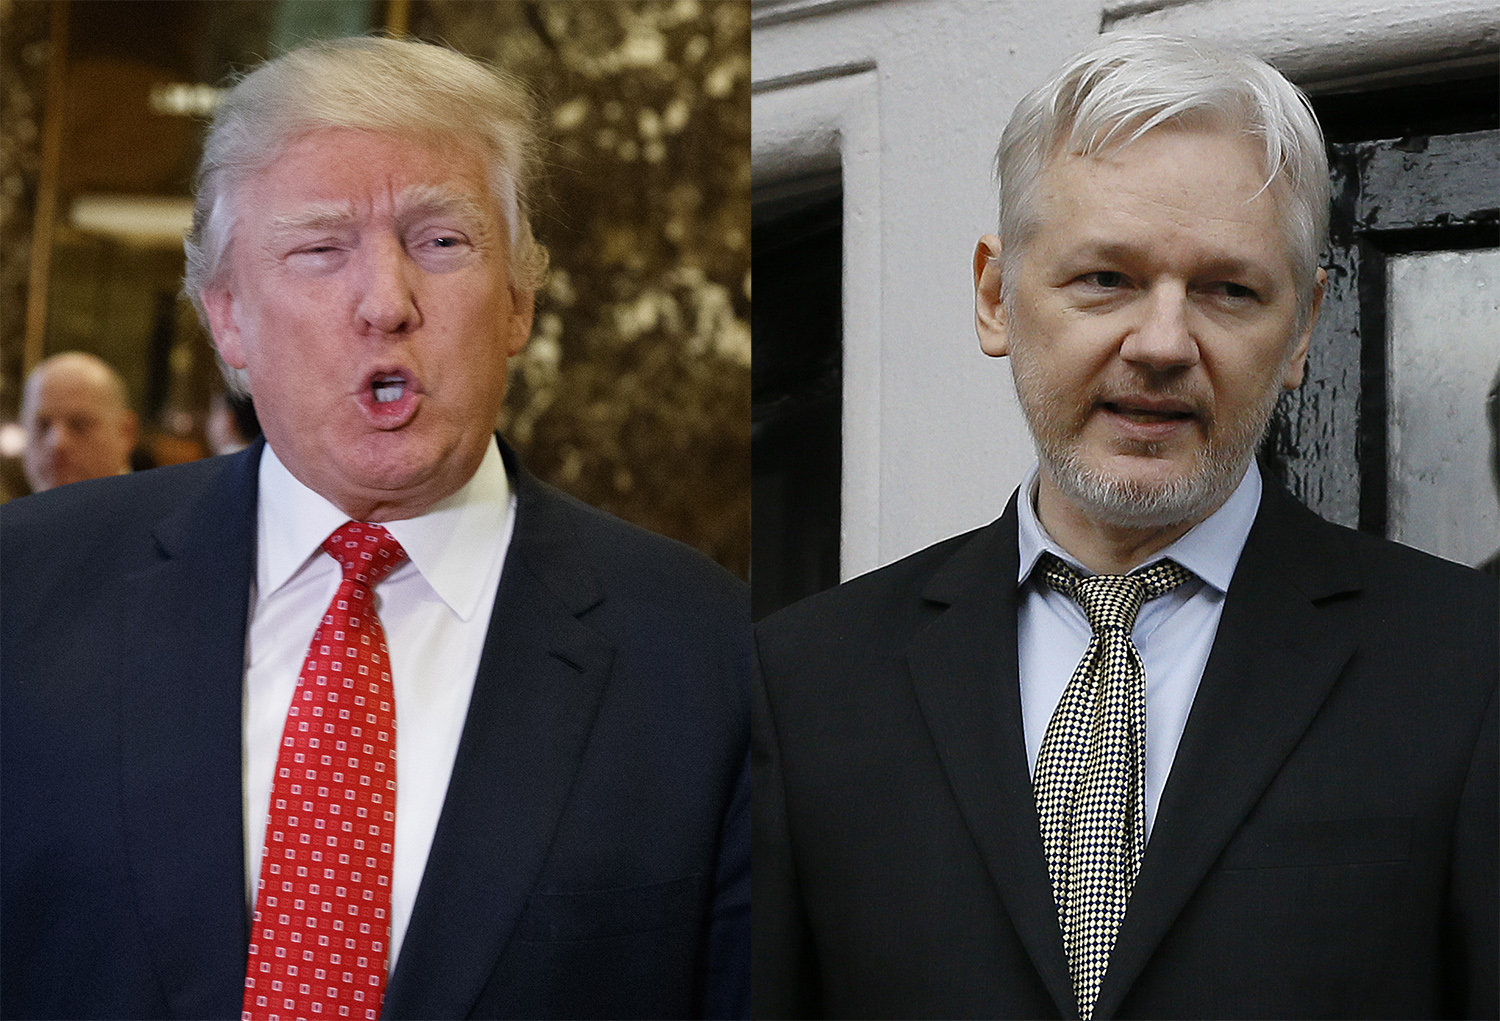 washingtonexaminer.com - Trump: 'I don't know anything' about Julian Assange